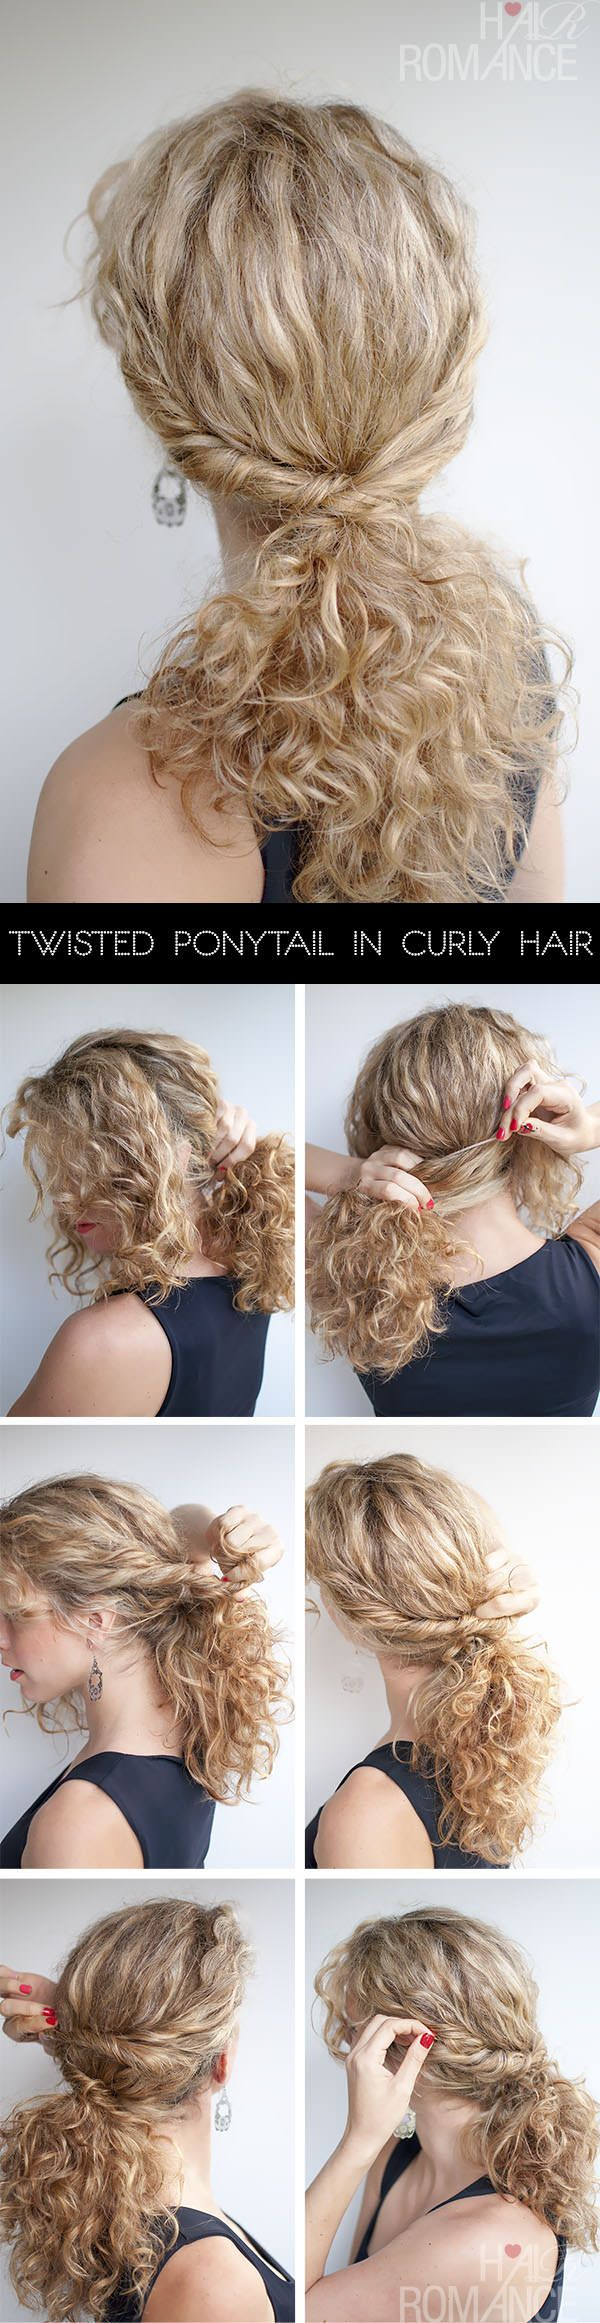 Holiday Hairstyles For Curly Hair Gals Her Campus